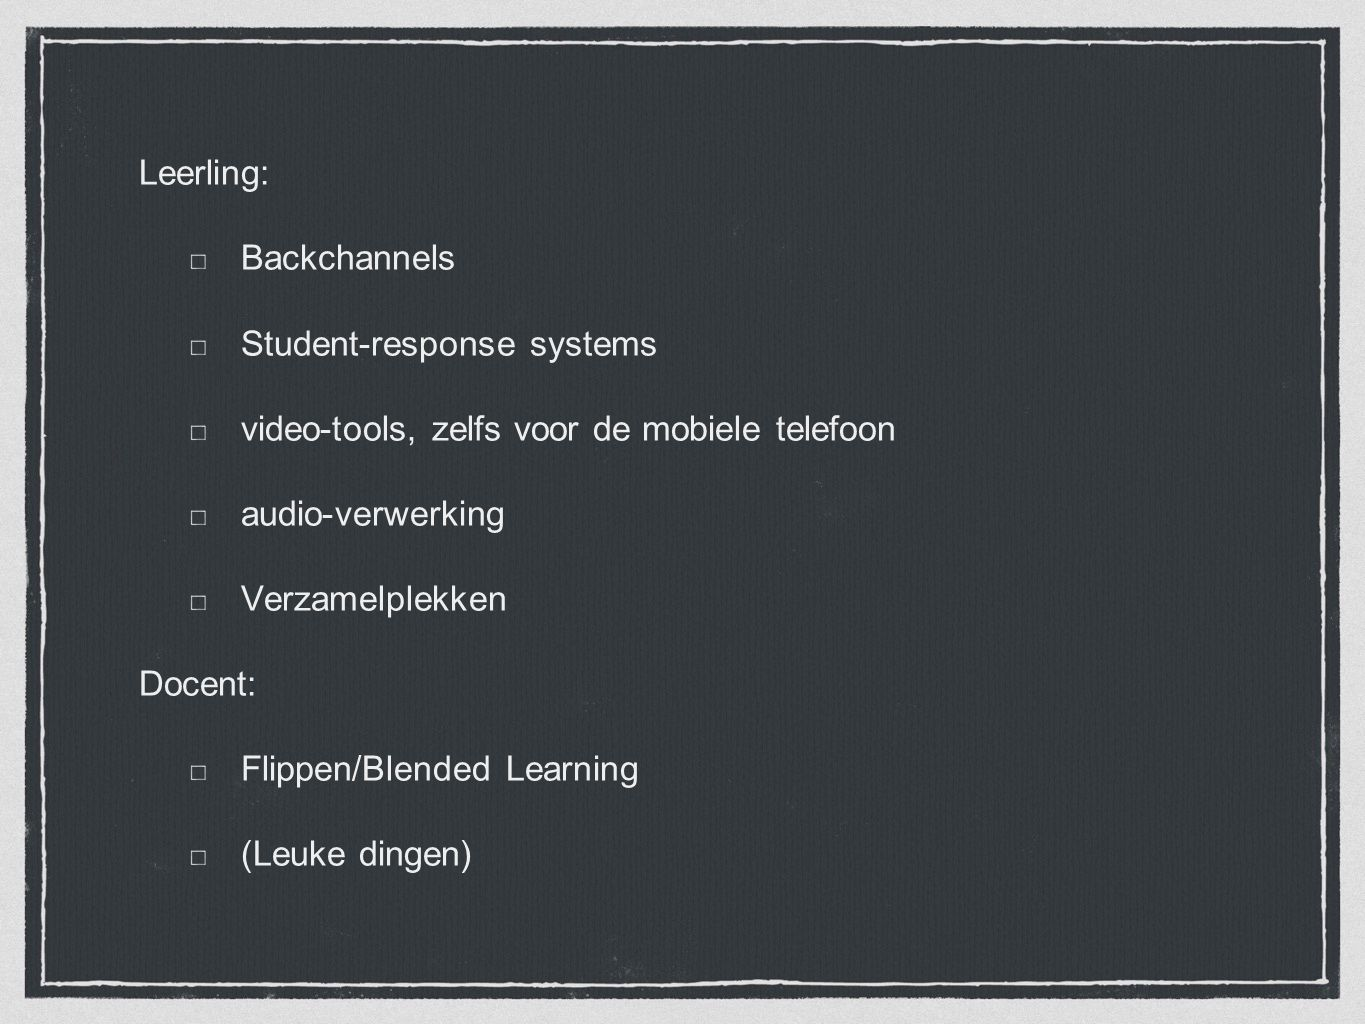 Leerling: Backchannels Student-response systems video-tools, zelfs voor de mobiele telefoon audio-verwerking Verzamelplekken Docent: Flippen/Blended Learning (Leuke dingen)